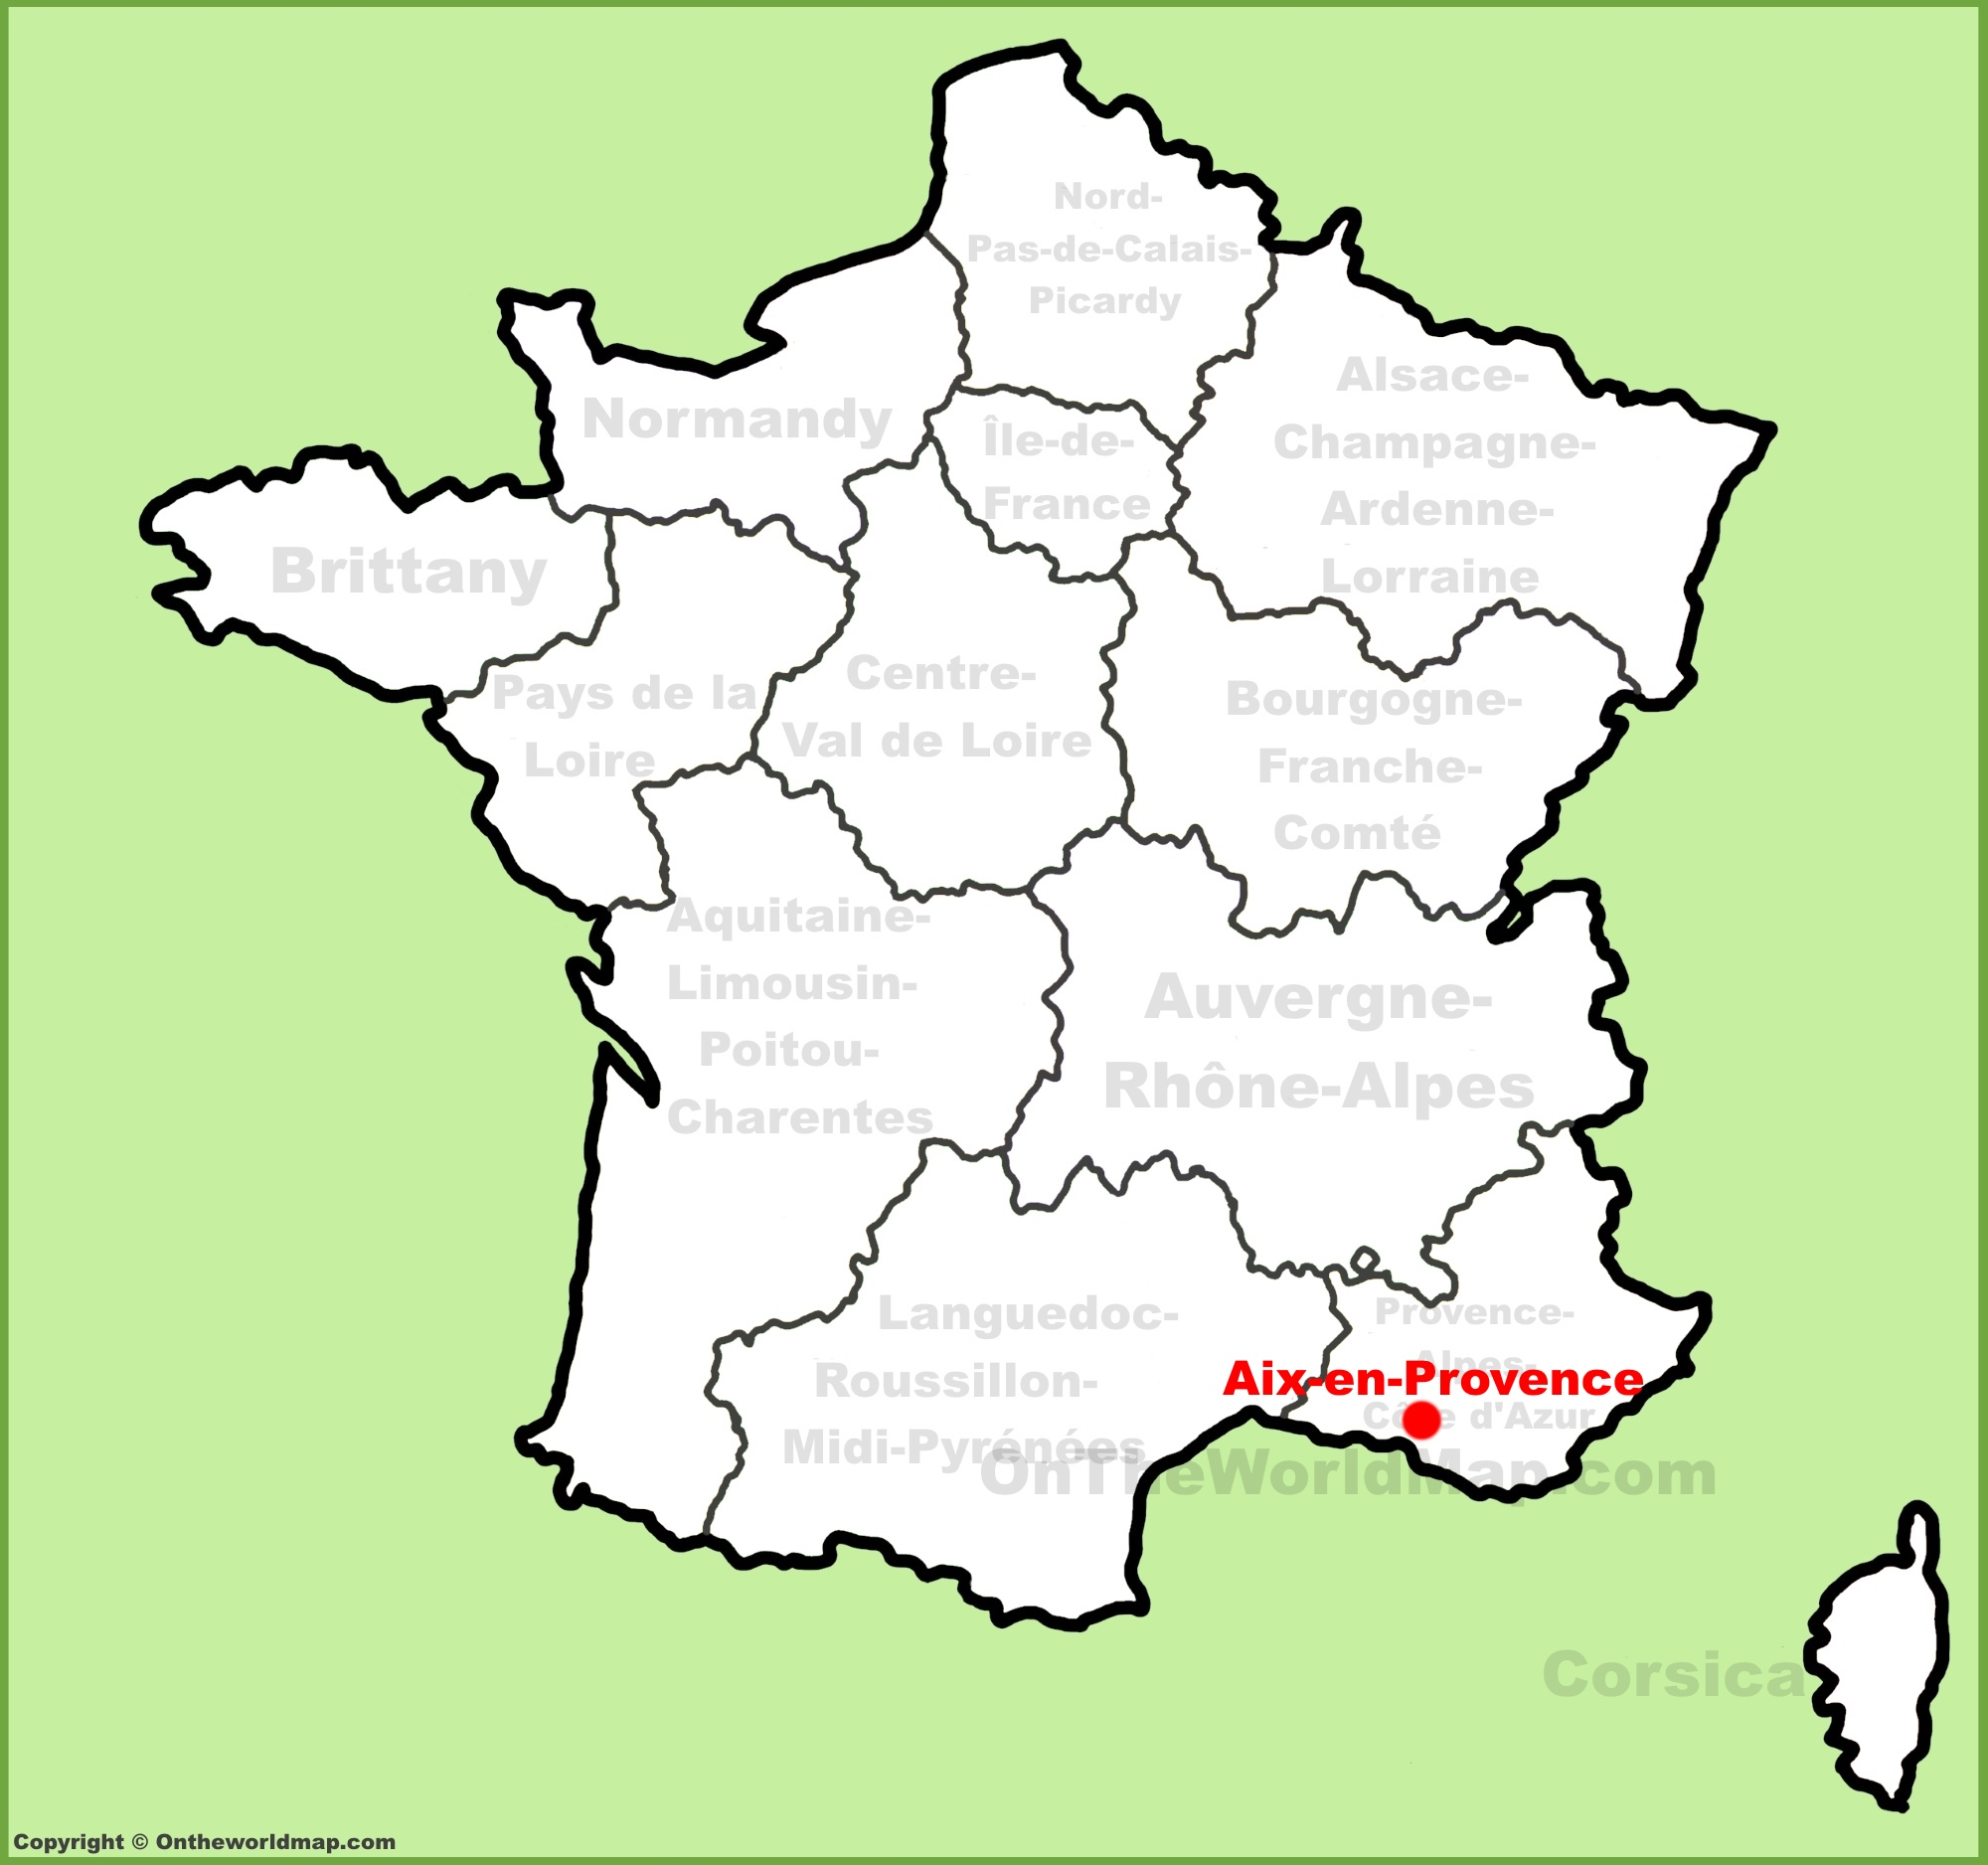 Provence Map Of France.Aix En Provence Location On The France Map